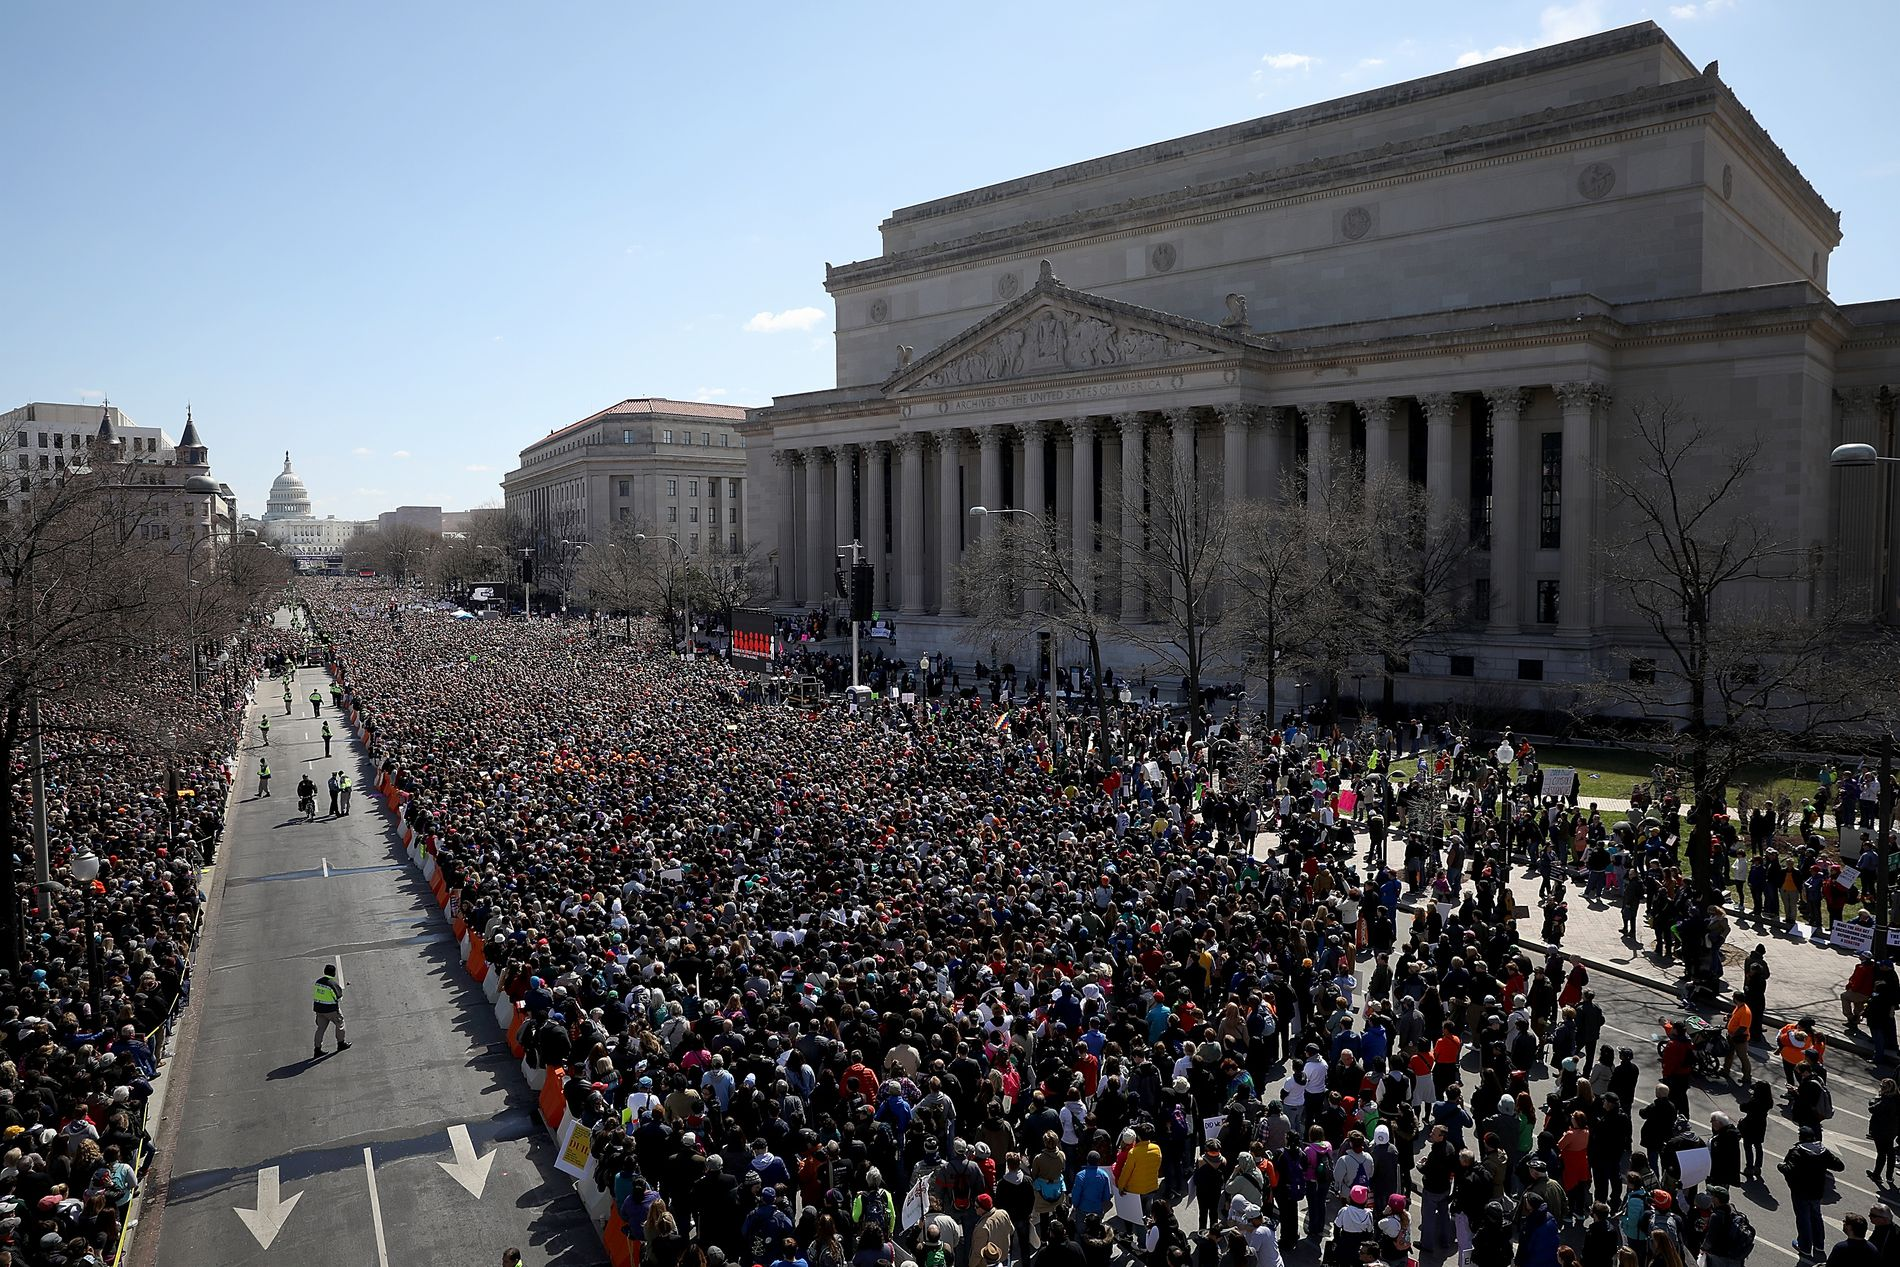 Thousands of people line Pennsylvania Avenue in Washington while attending the March for Our Lives rally on March 24, 2018, to call for gun-control measures. Hundreds of thousands of demonstrators, including students, teachers and parents gathered for the anti-gun violence rally.  WIN MCNAMEE/GETTY IMAGES